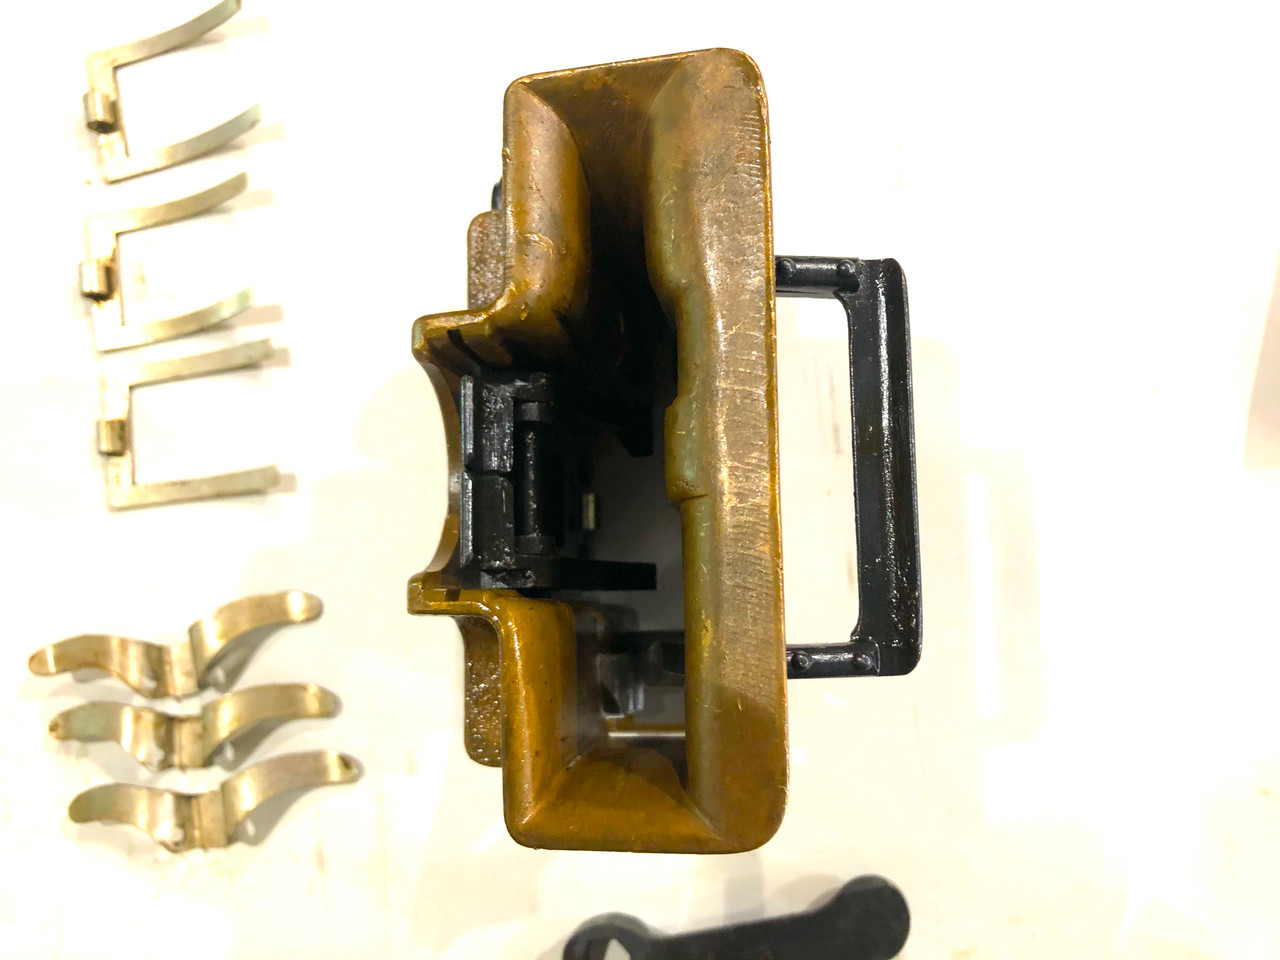 LOT: Vickers MMG Rear Crosspiece - Grip Assembly (SHIPS Free) 200918-02